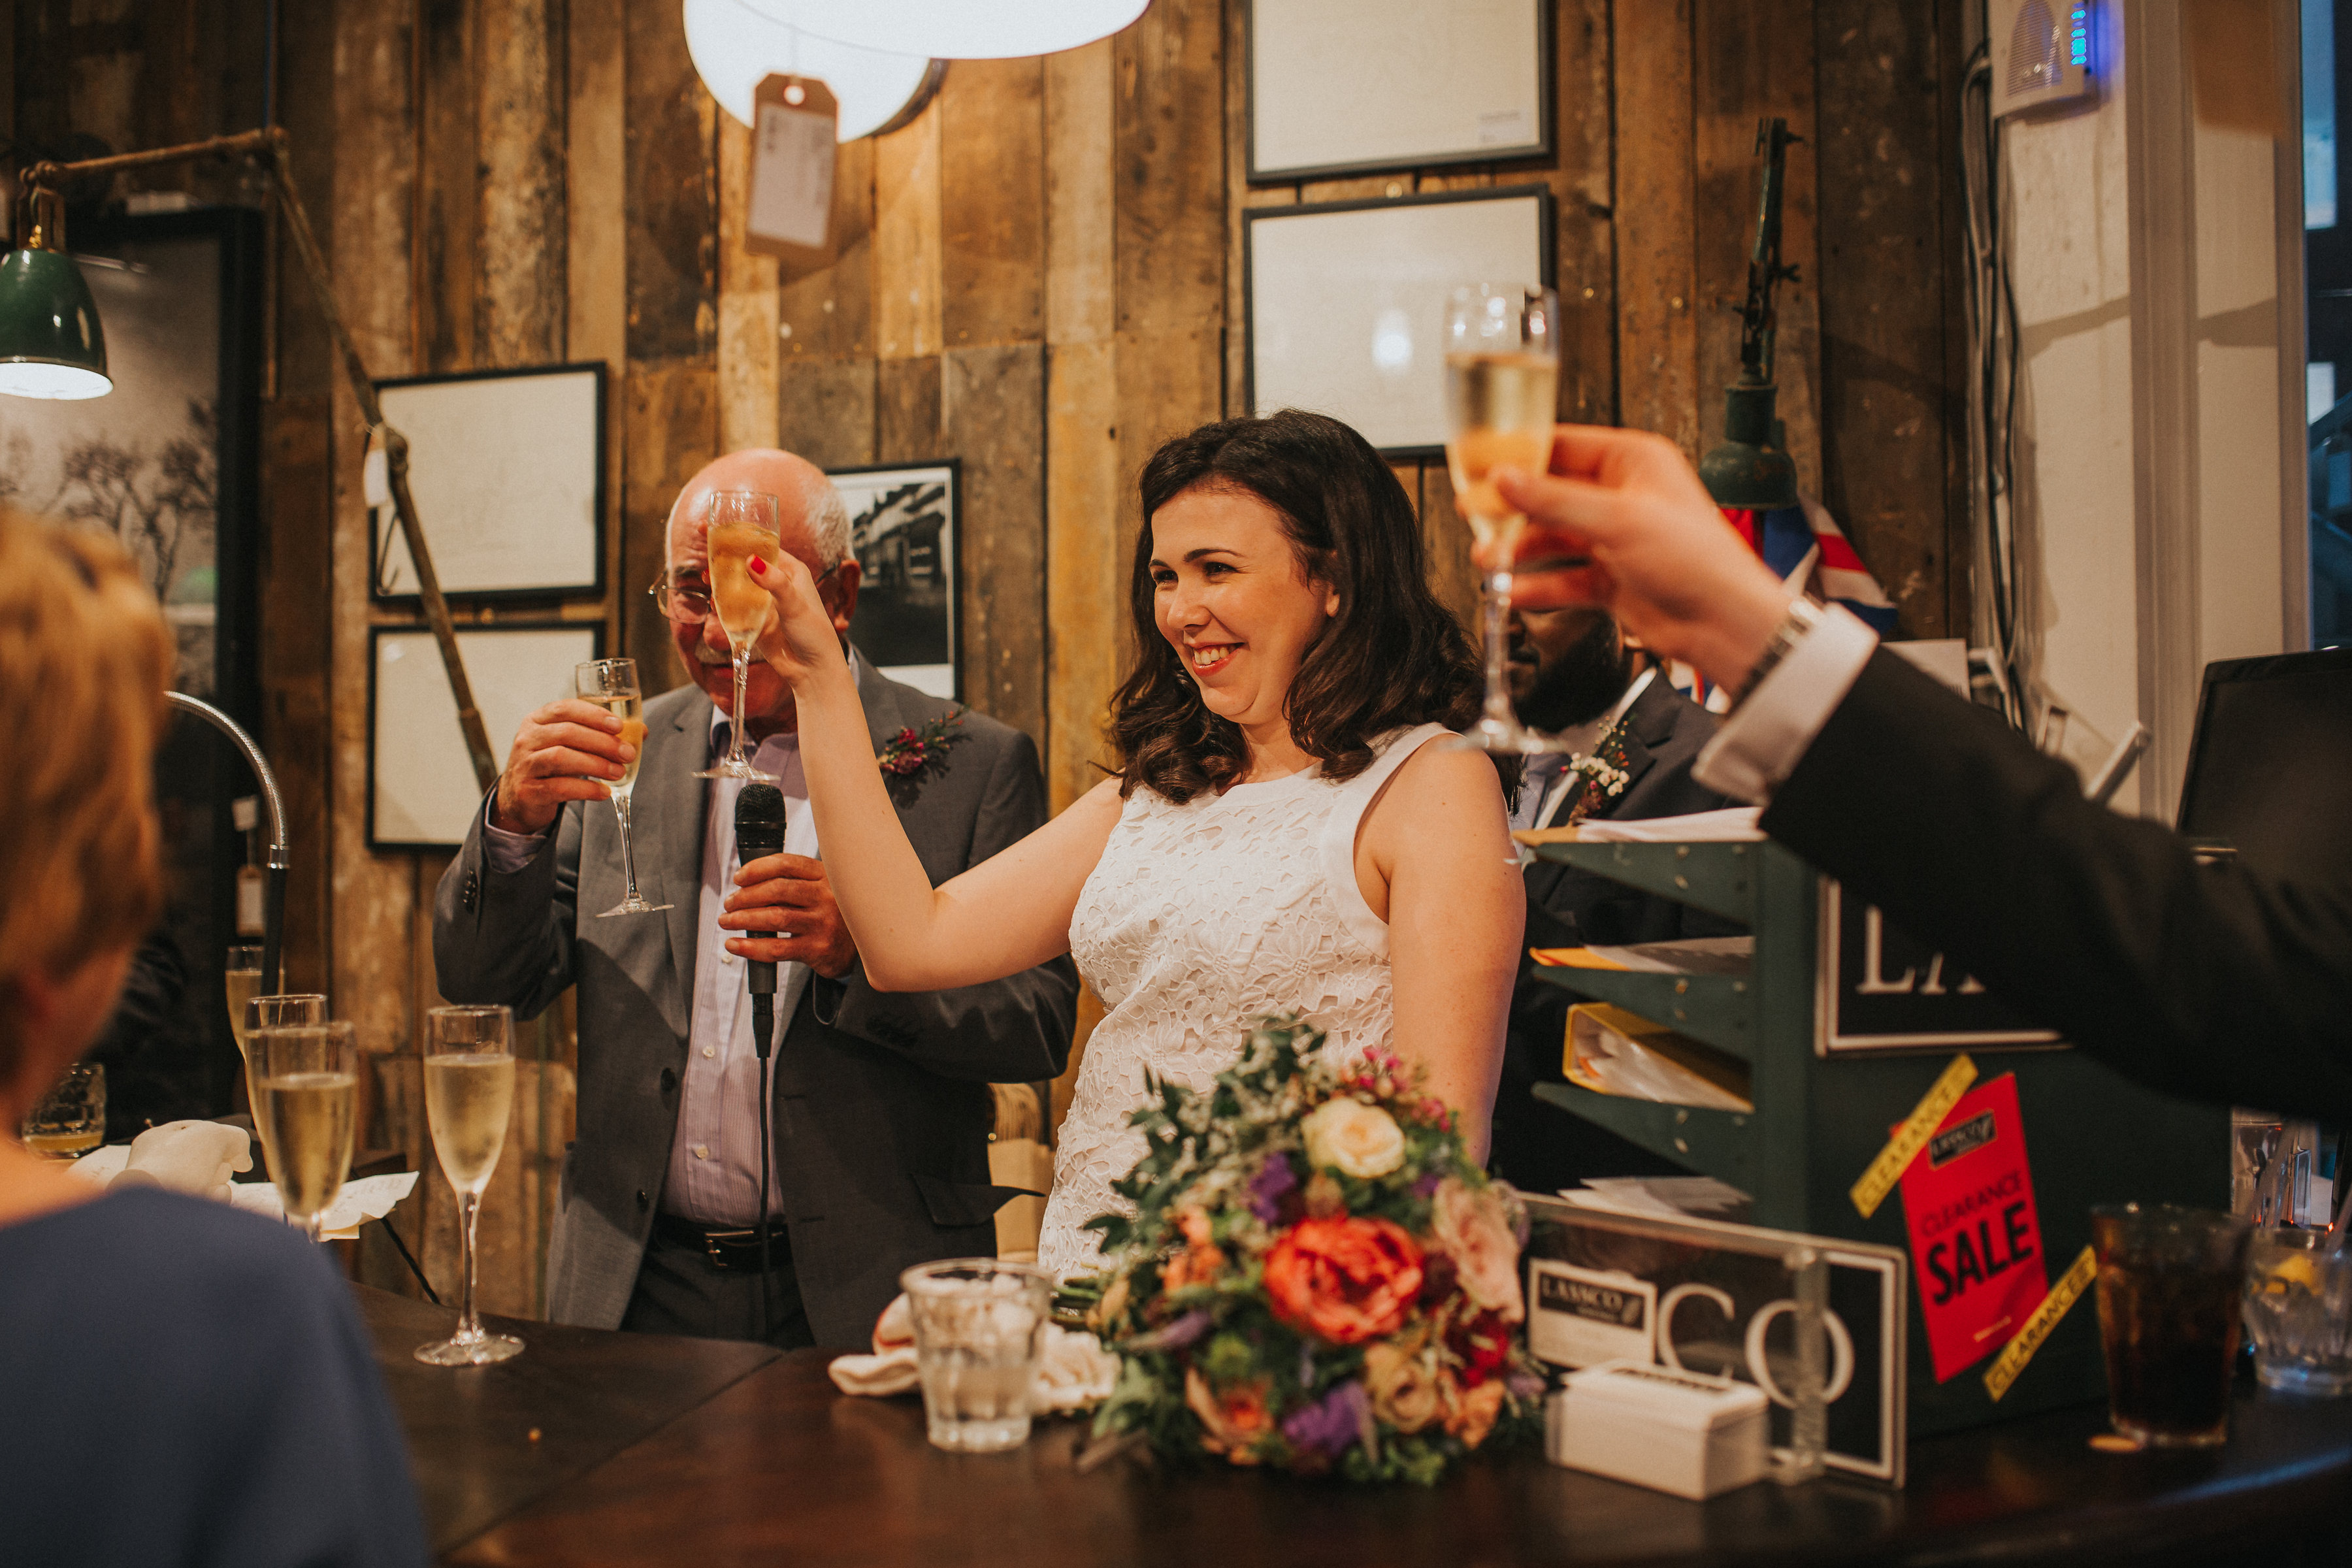 maltby street market wedding, london wedding